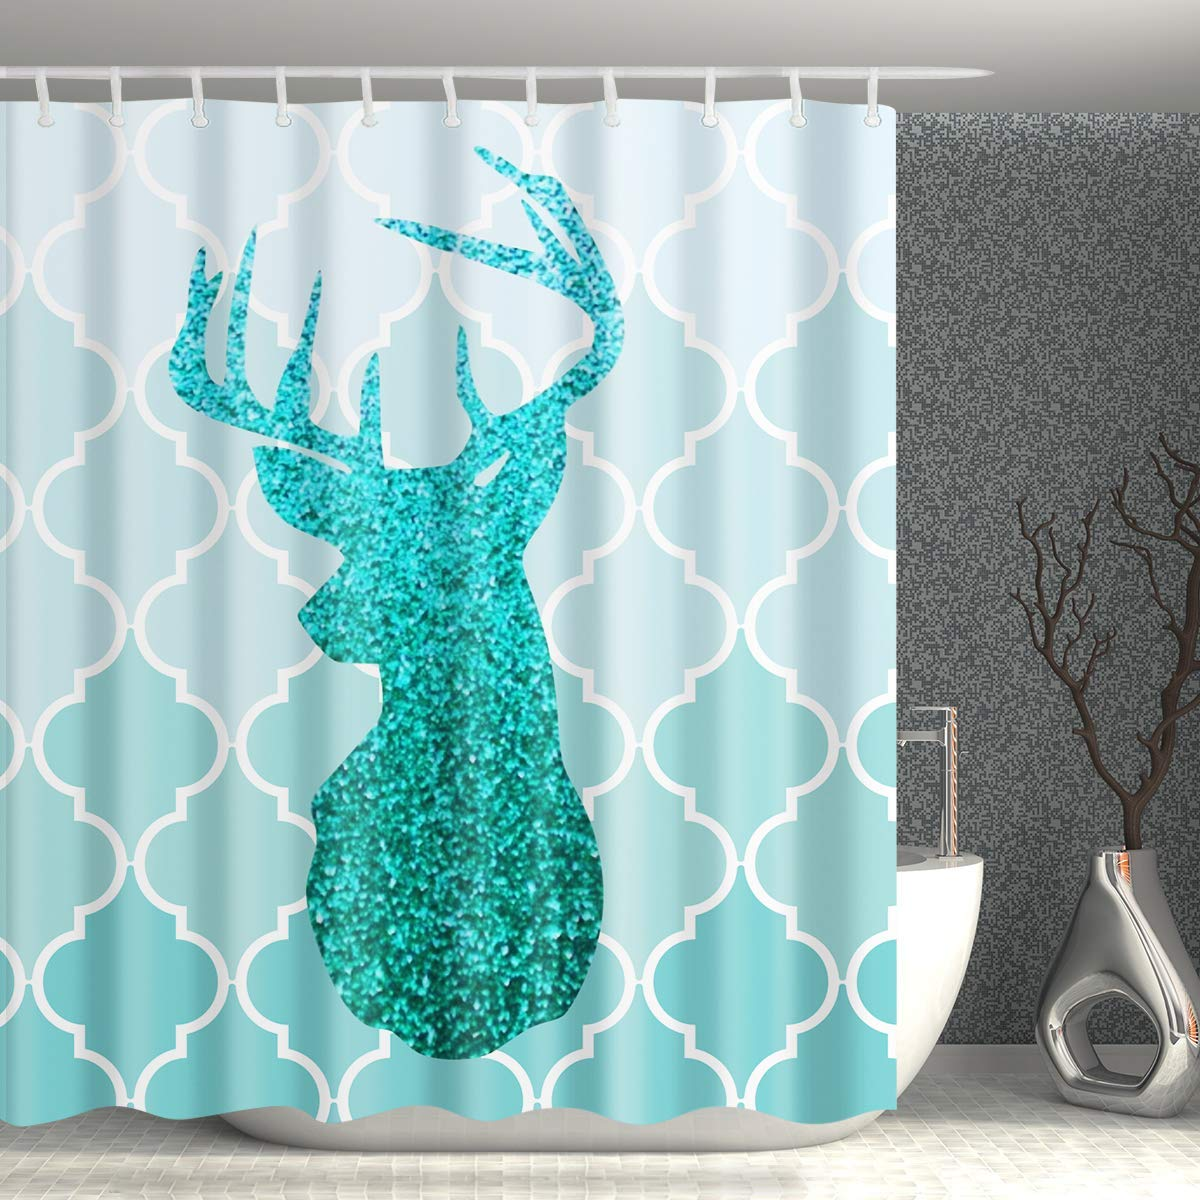 Get Quotations Homify Turquoise Shower CurtainGreen Ombre European Medieval Gradient Patterns Bathroom Curtain With Dear